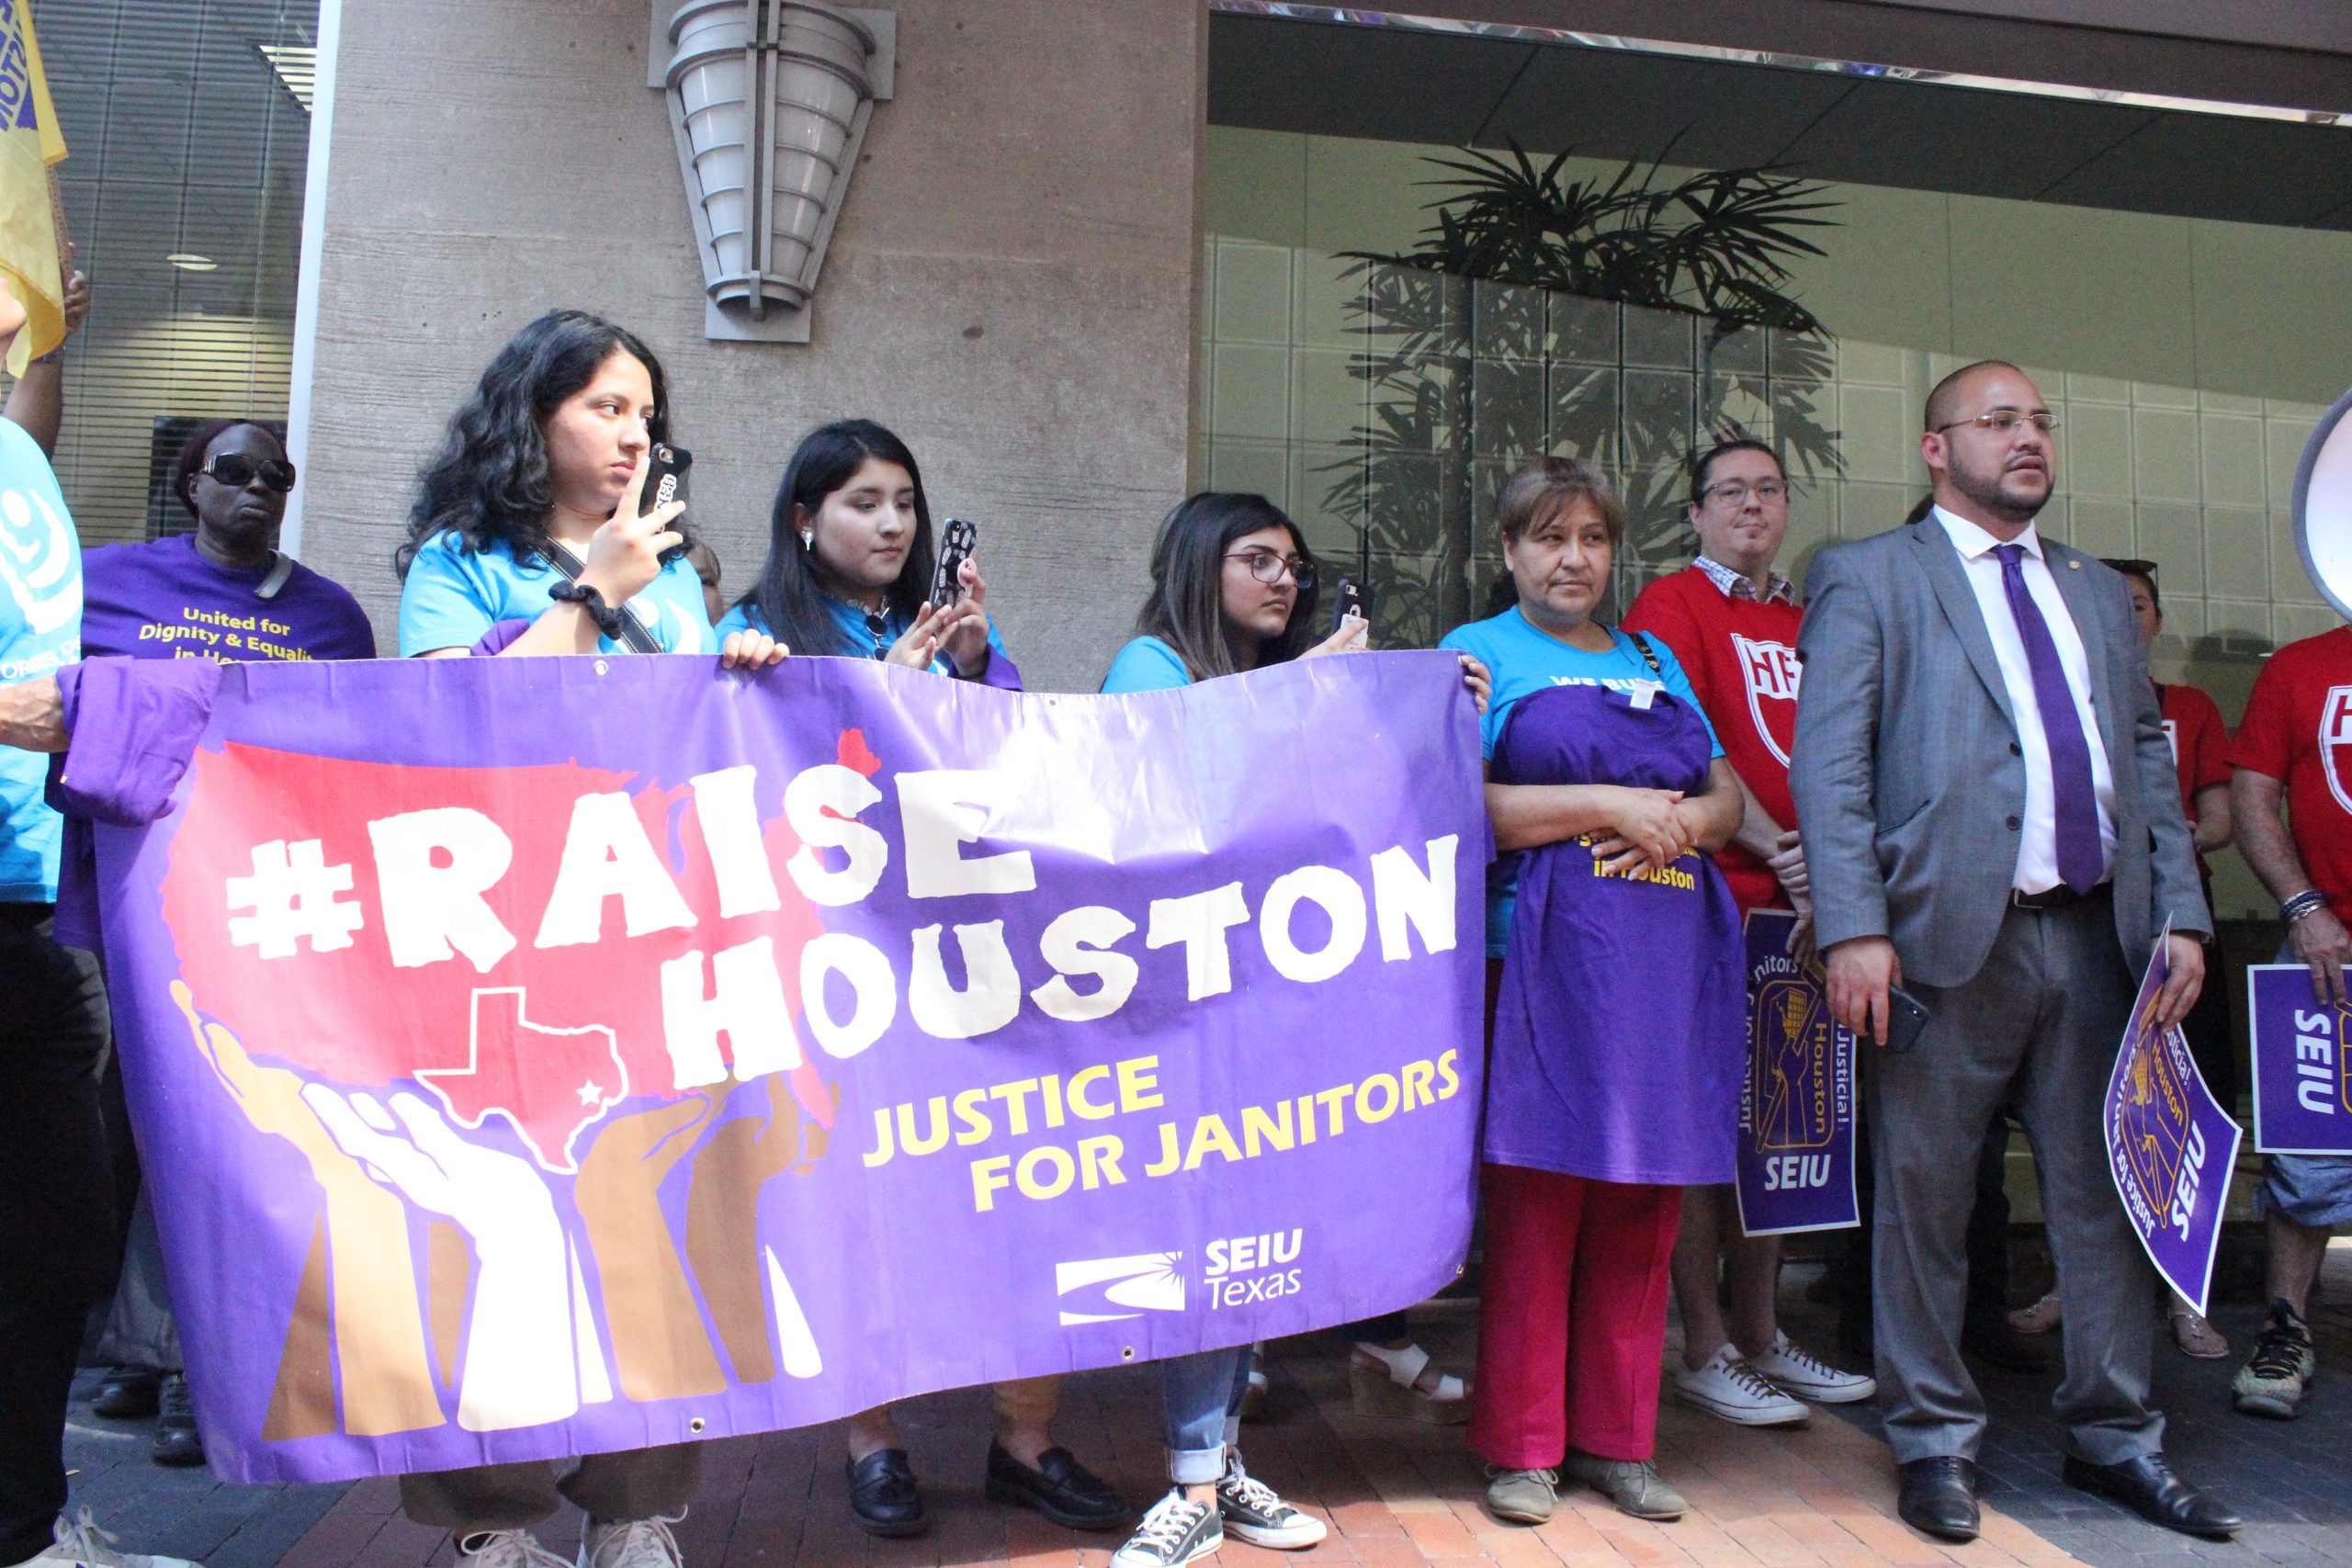 Cleaning workers and janitors demonstrate in downtown Houston to demand better working conditions